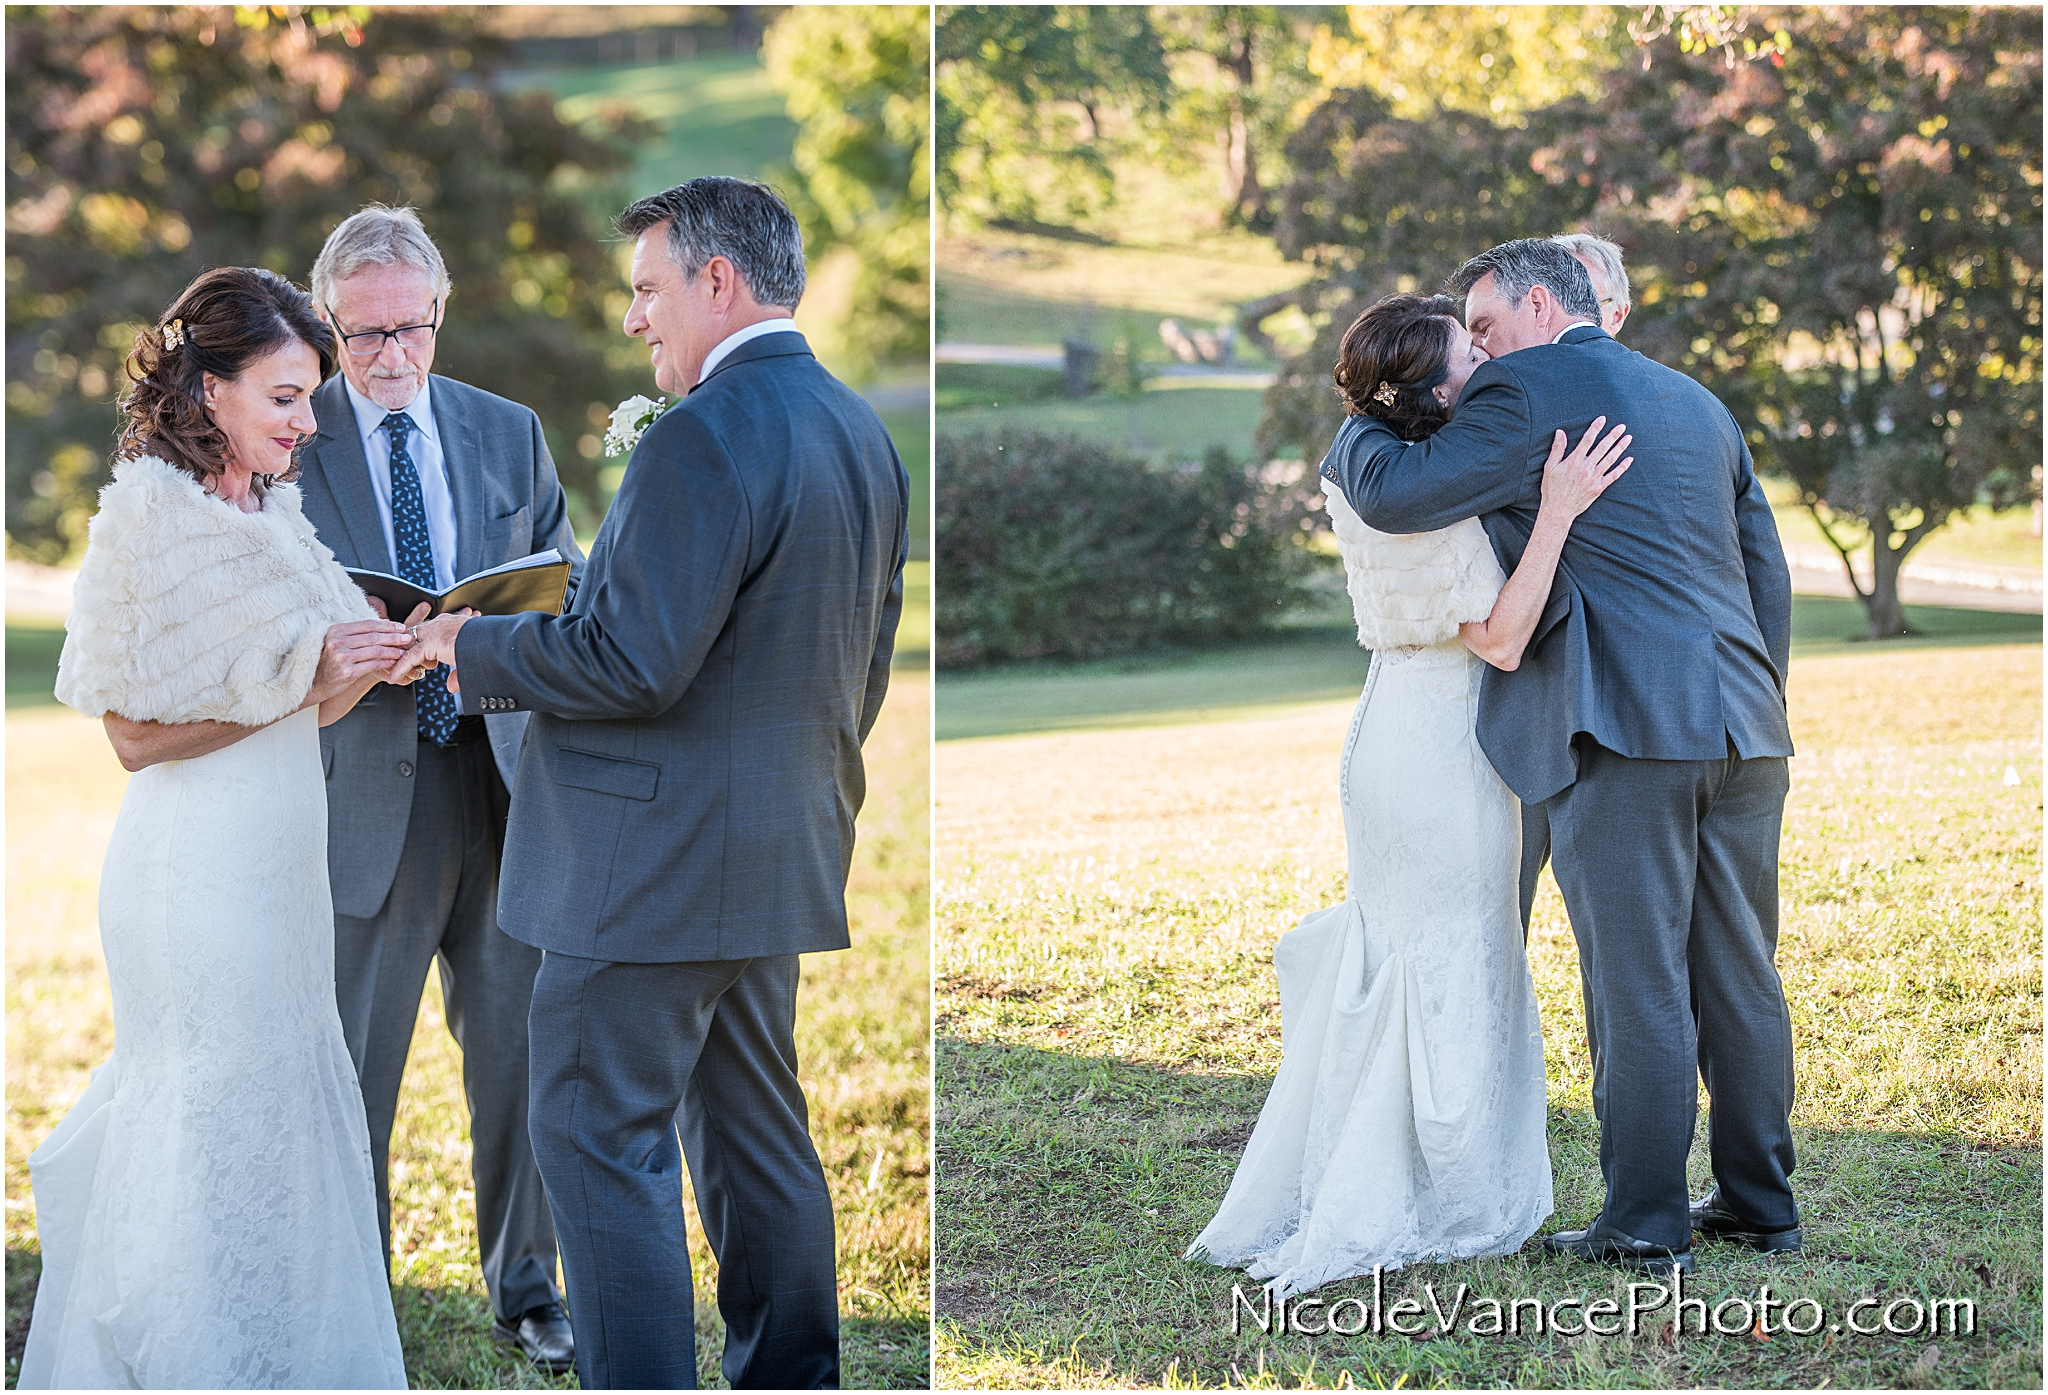 The couple exchange rings and their first kiss during their ceremony at Maymont Park.